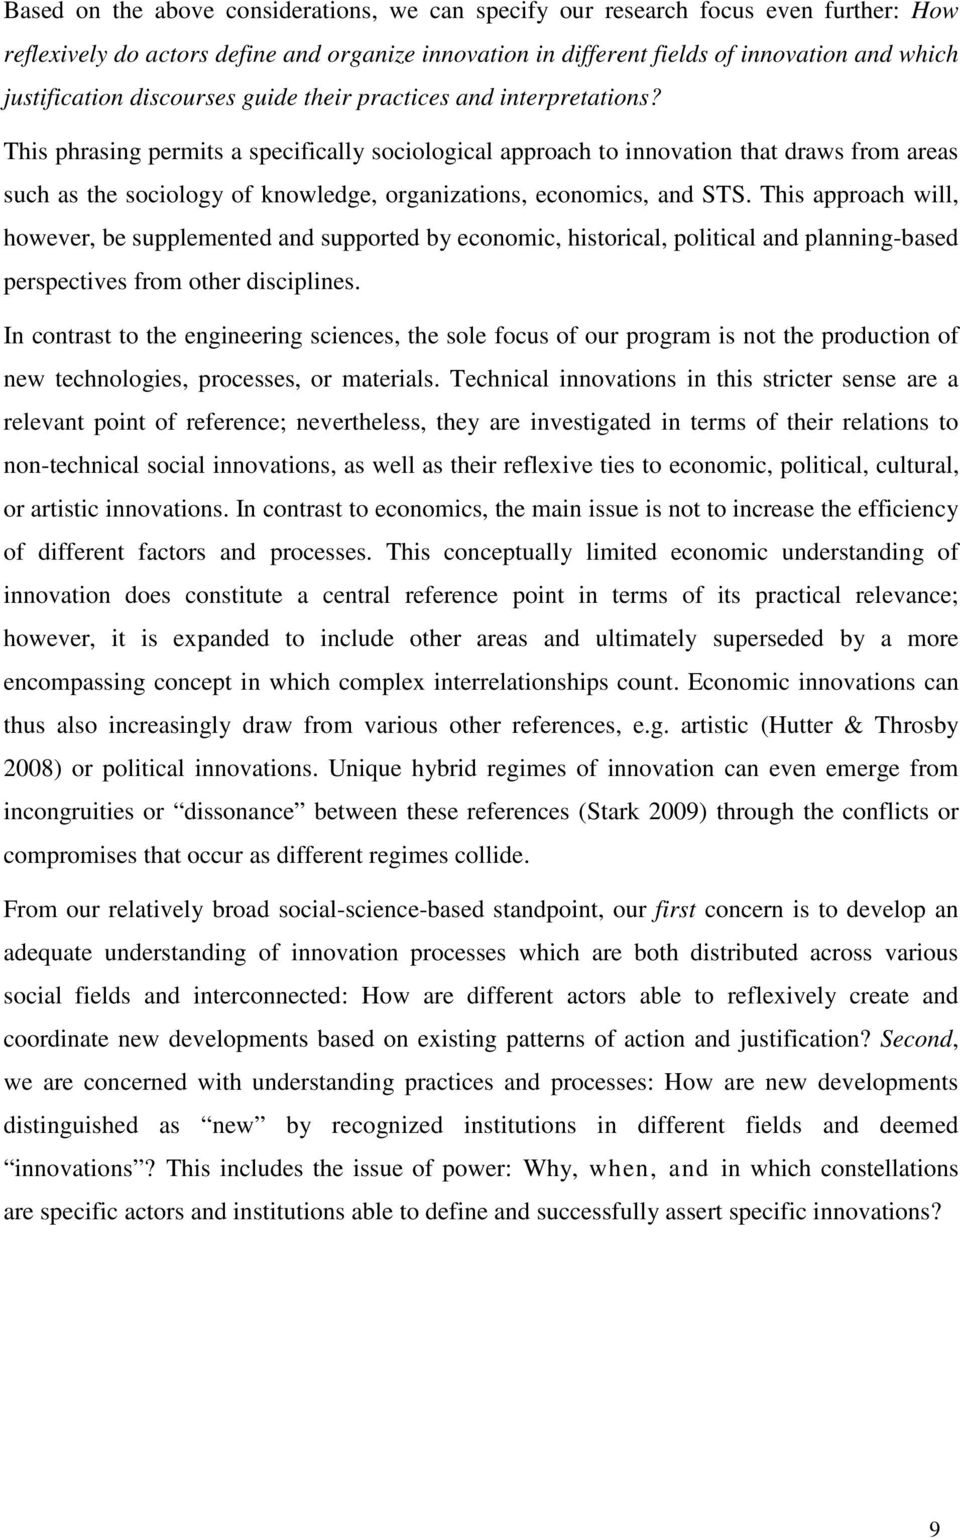 This phrasing permits a specifically sociological approach to innovation that draws from areas such as the sociology of knowledge, organizations, economics, and STS.